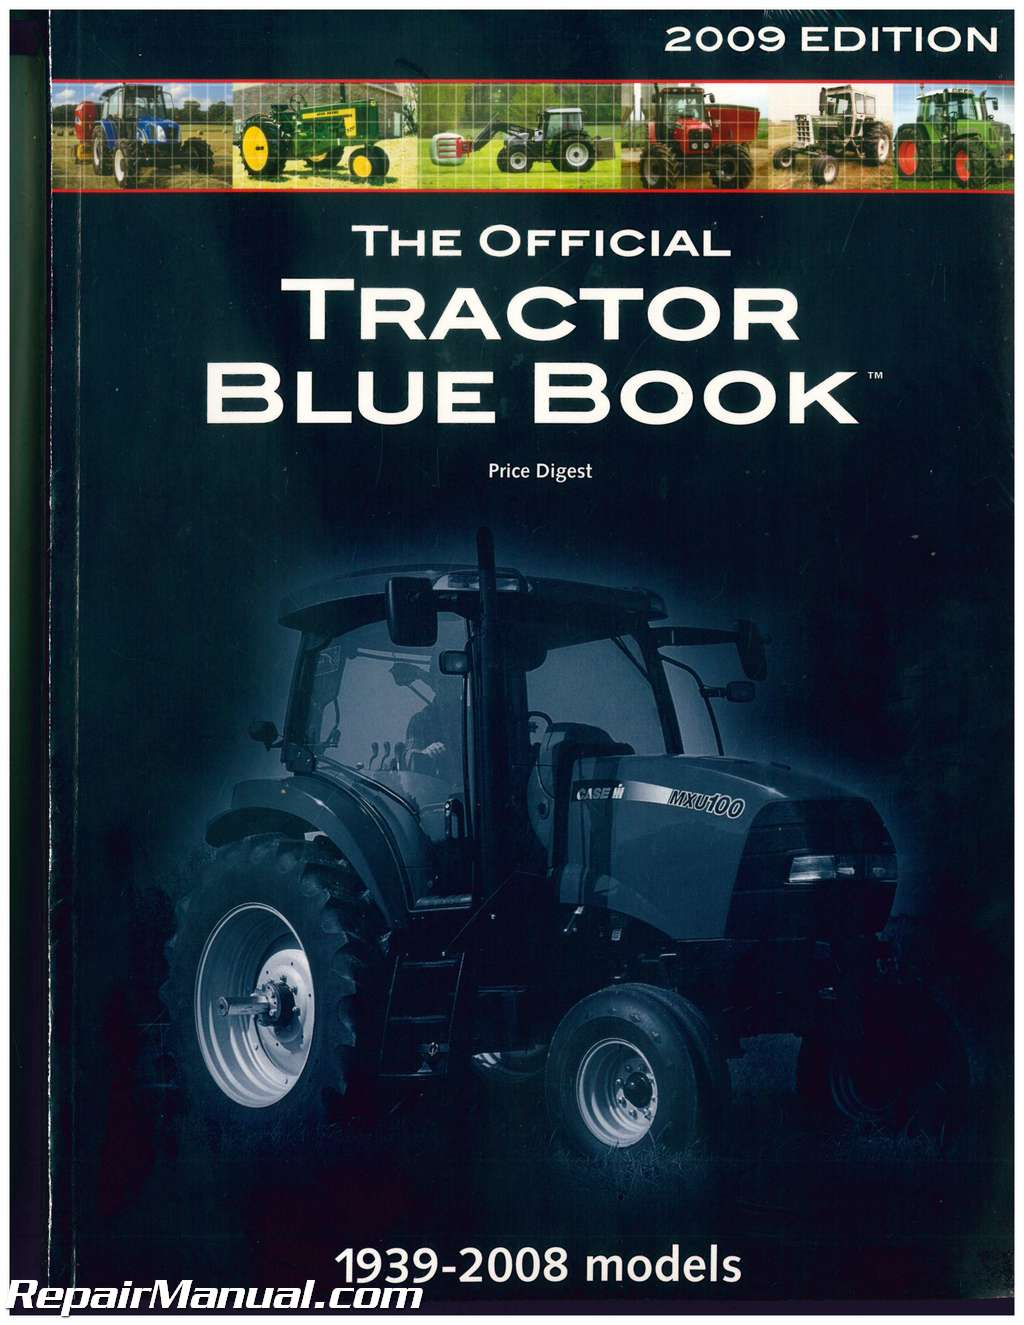 Tractor Blue Book >> The Official 2009 Edition Tractor Blue Book 1939 2008 Tractor